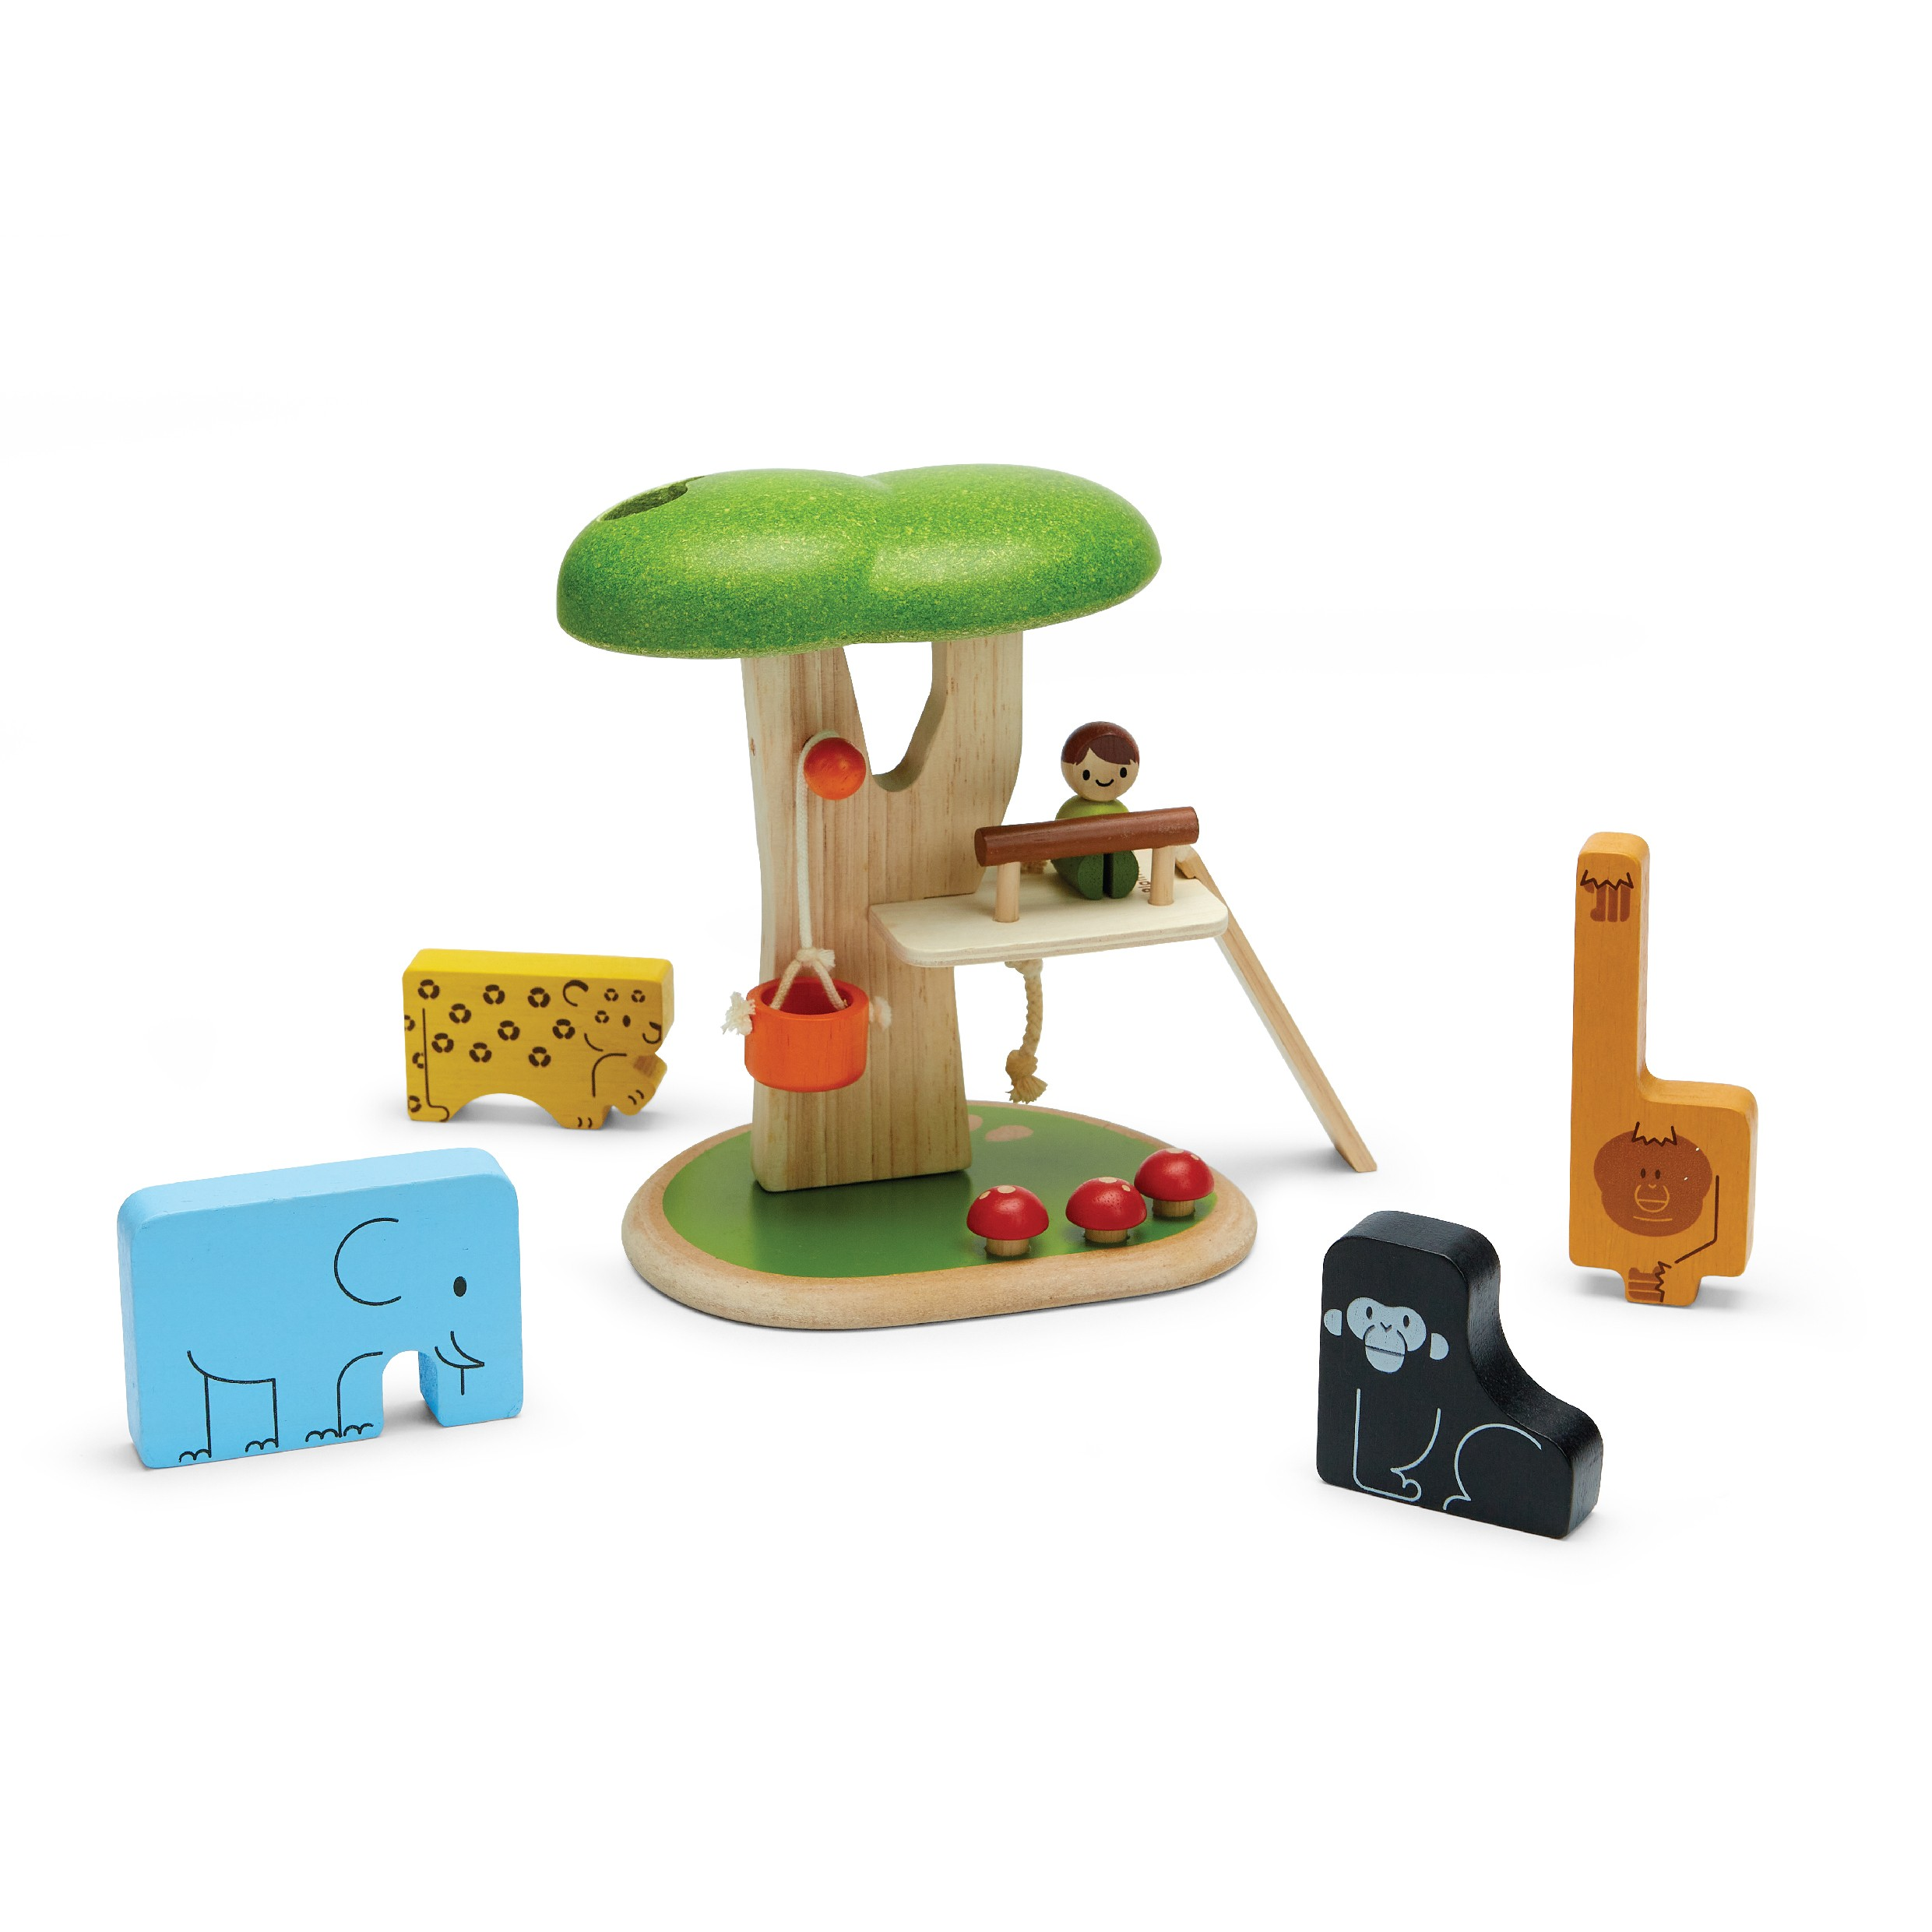 4644_PlanToys_Animal_Puzzle_Game_Game_and_Puzzles_2yrs_Language_and_Communications_Coordination_Visual_Concentration_Logical_Problem_Solving_Wooden_toys_Education_toys_Safety_Toys_Non-toxic_1.jpg